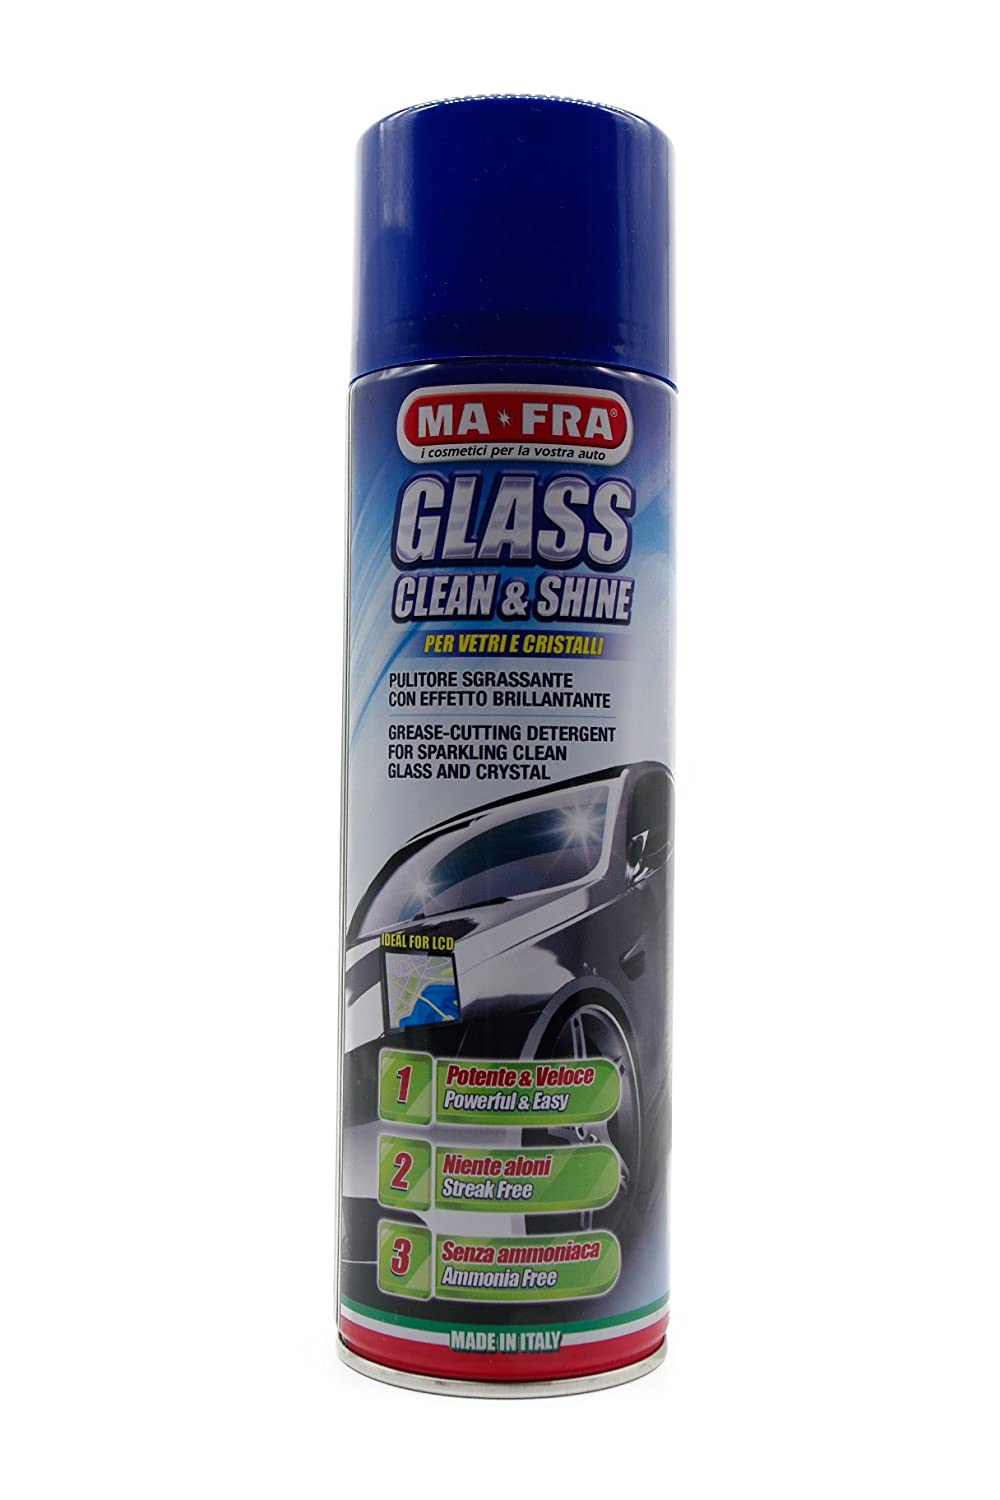 GLASS CLEAN&SHINE 500ml MA-FRA PULITORE SGRASSANTE CON EFFETTO BRILLANTANTE